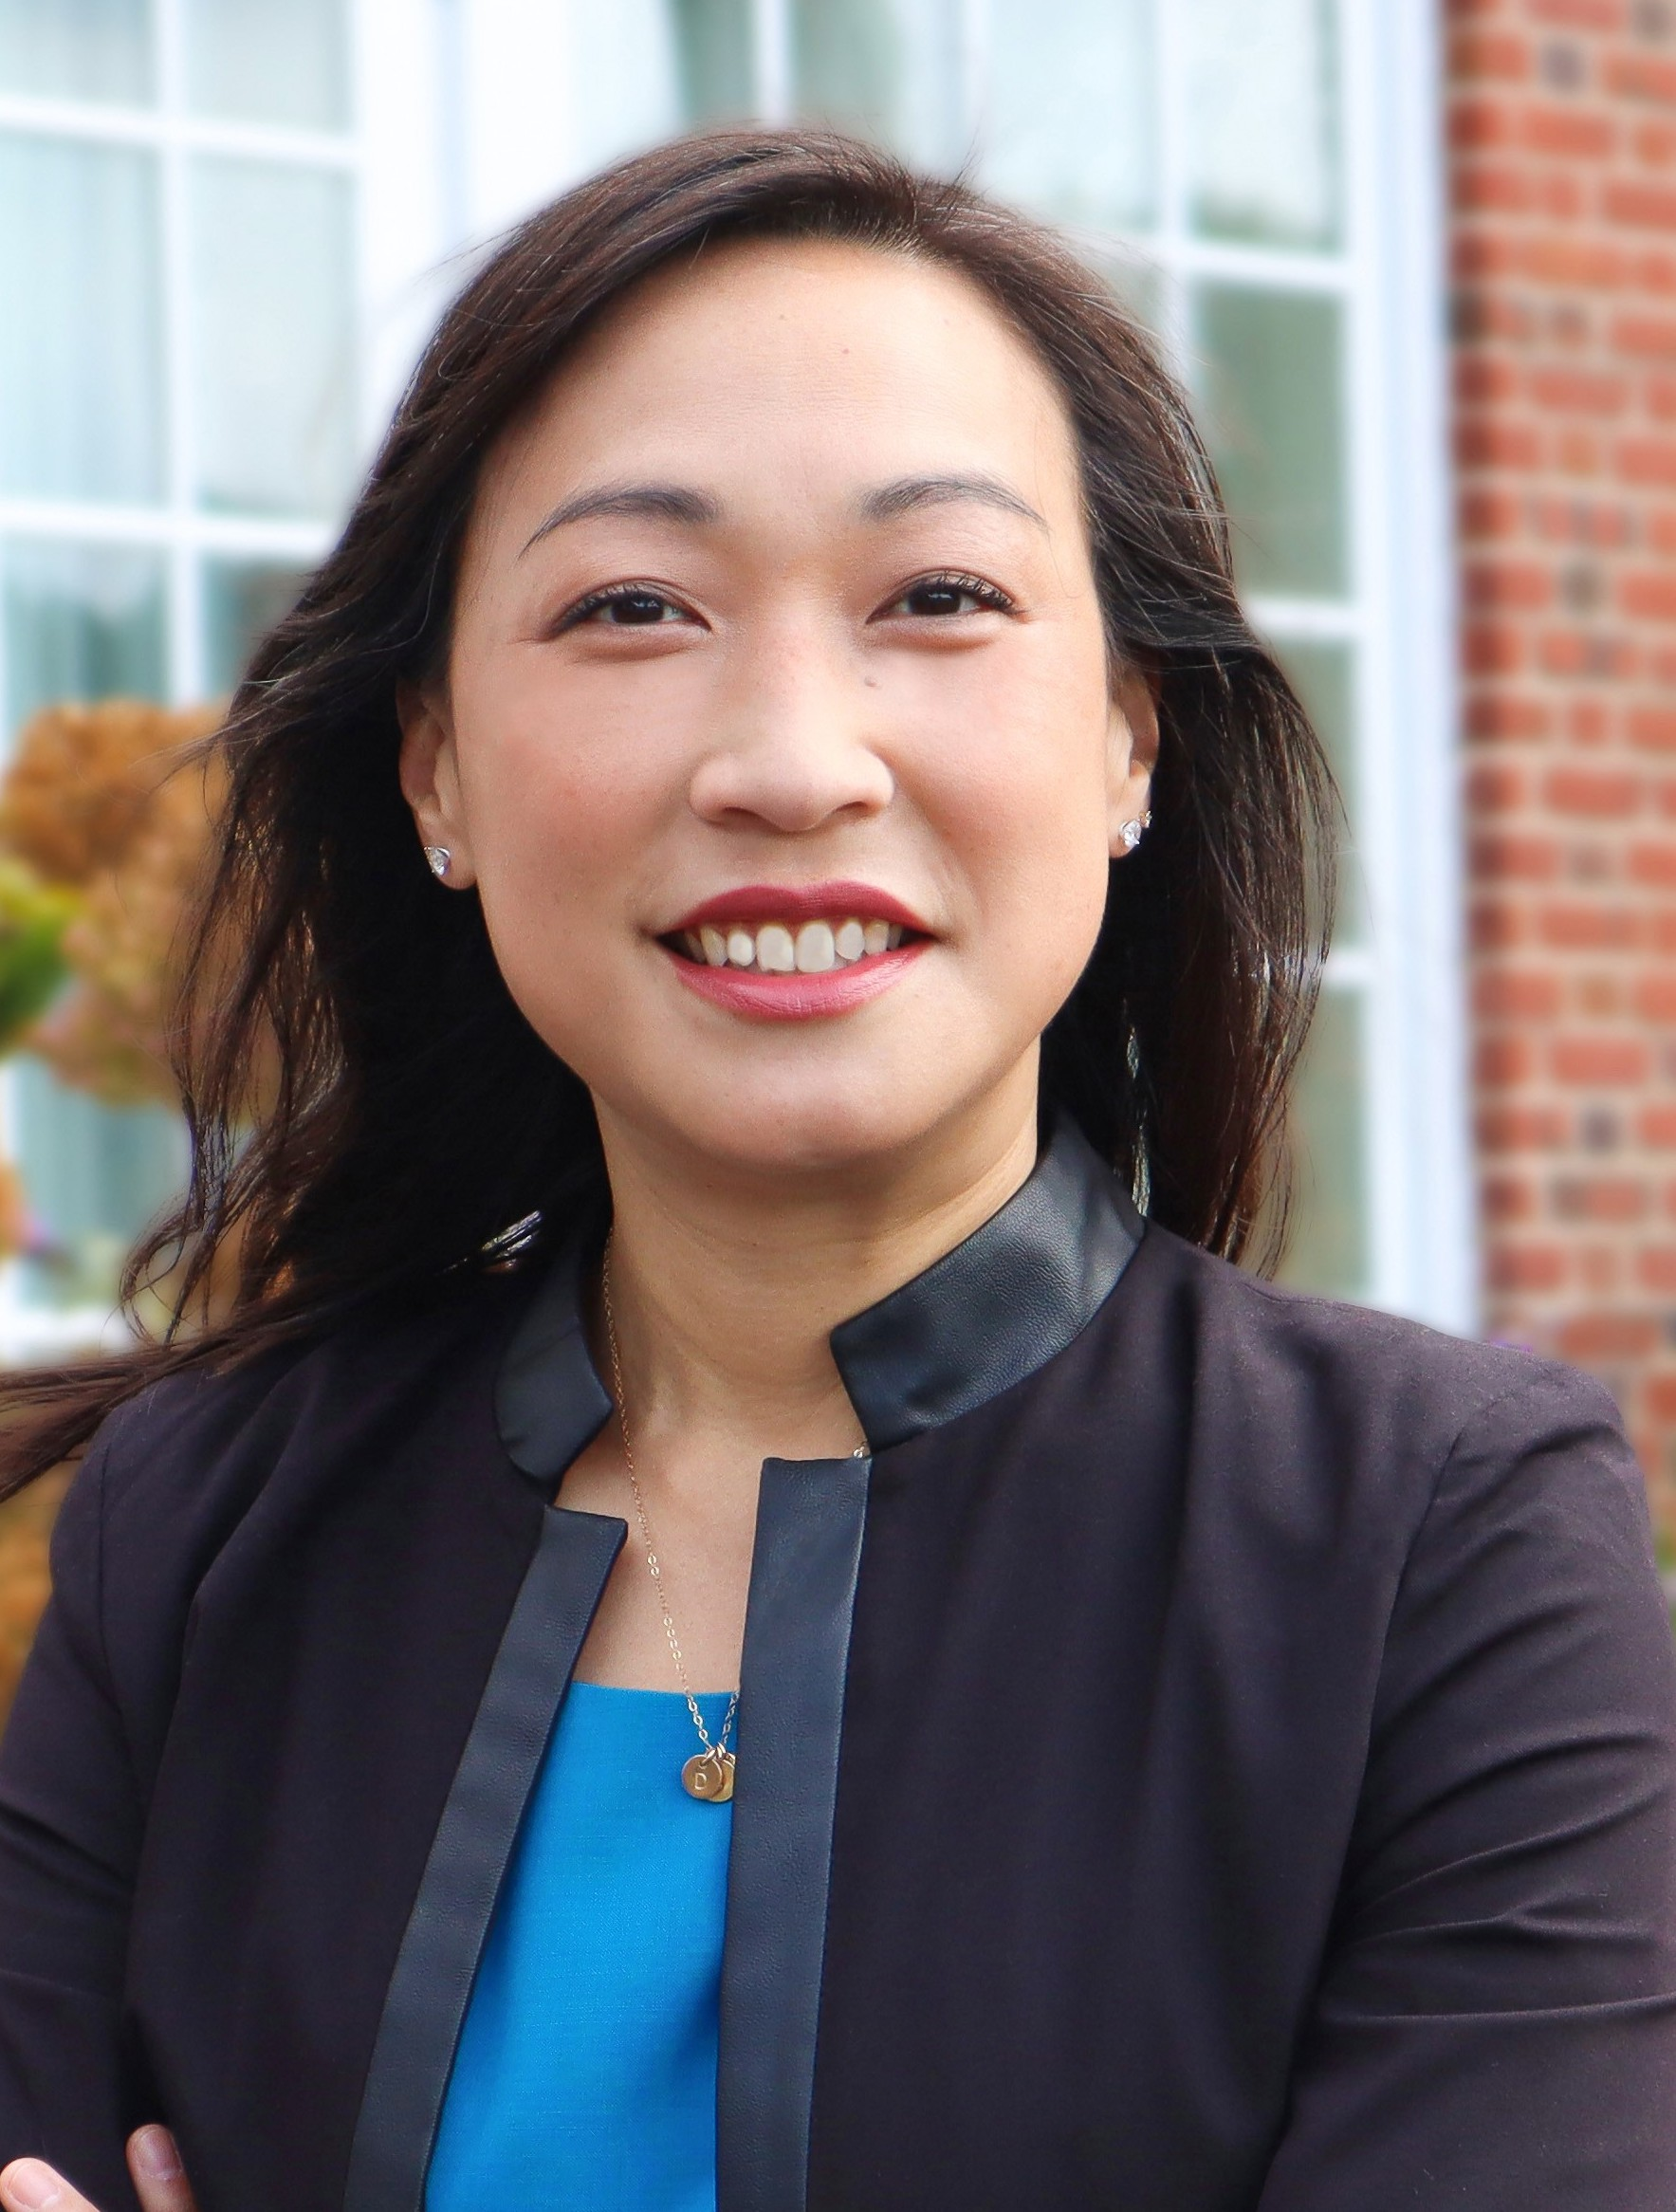 Headshot of Barry Grodenchik